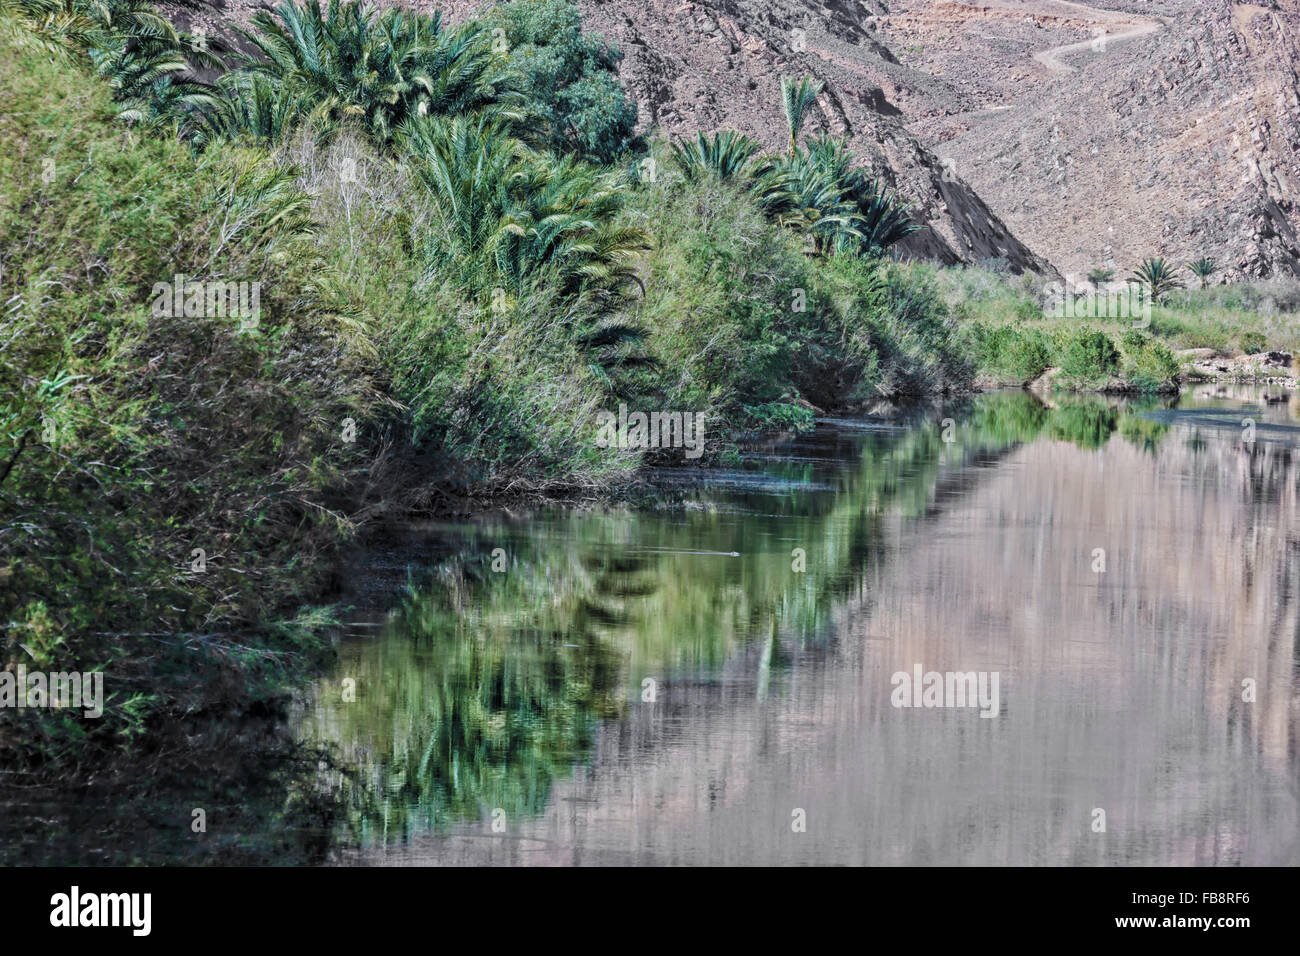 Palms and trees along a river, with reflections in the water. - Stock Image